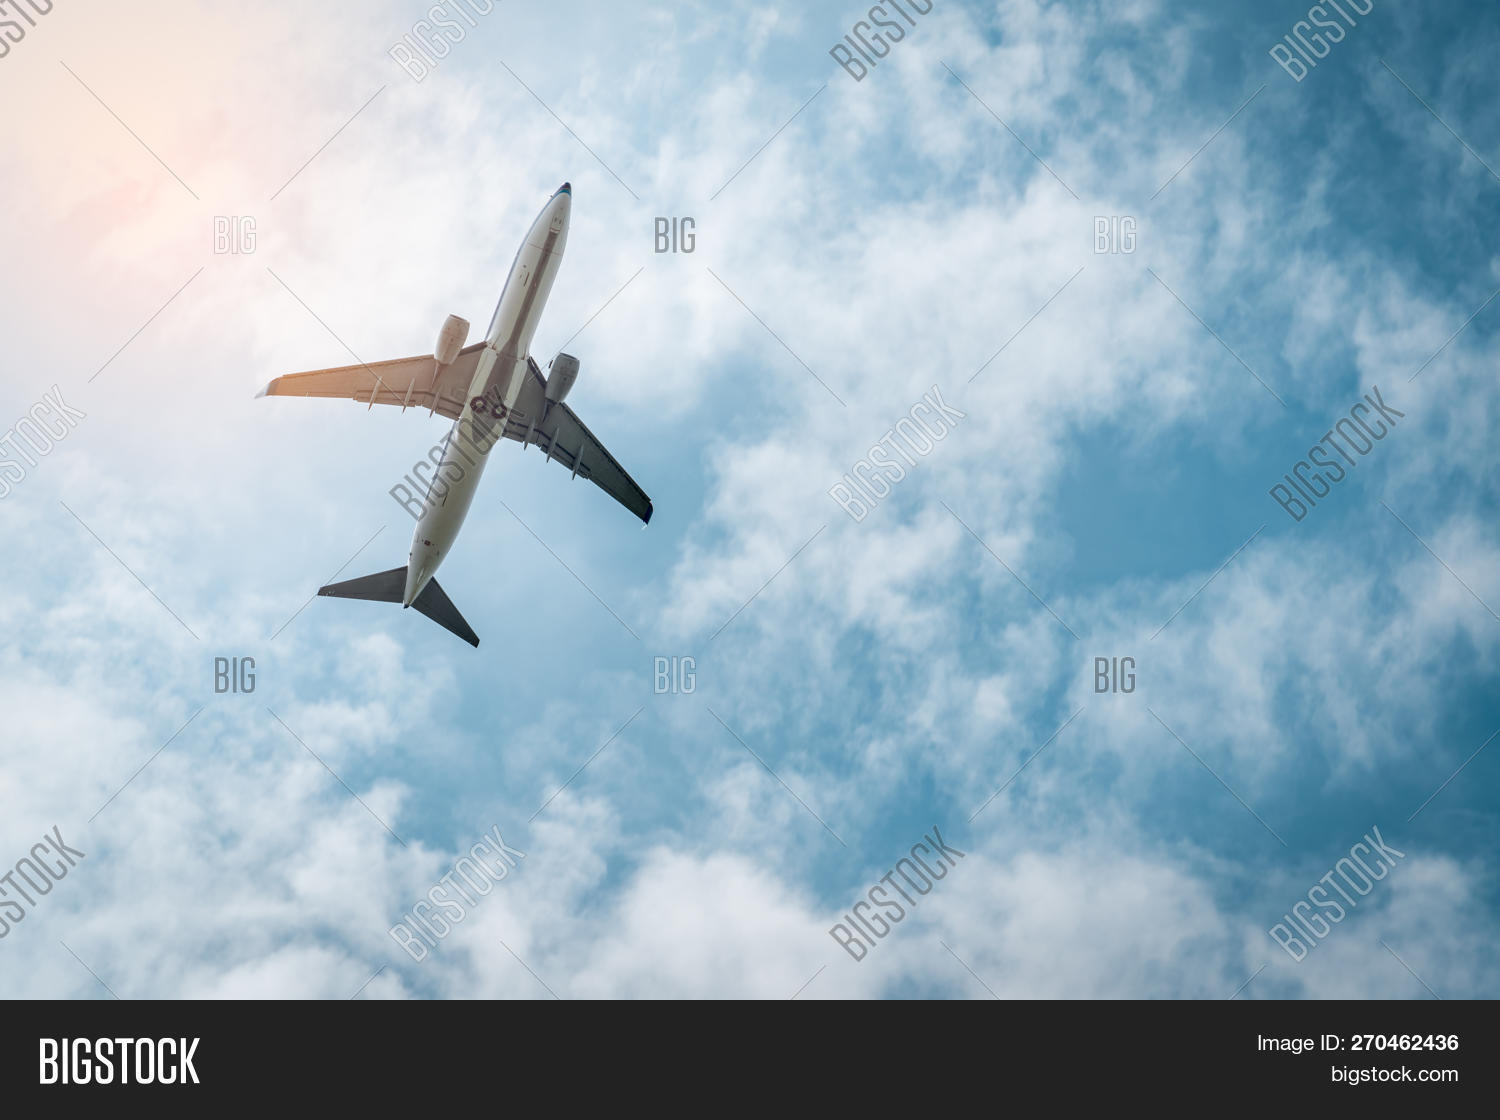 Commercial Airline. Passenger Plane Takes Off At Airport With Beautiful Blue Sky And White Clouds. L